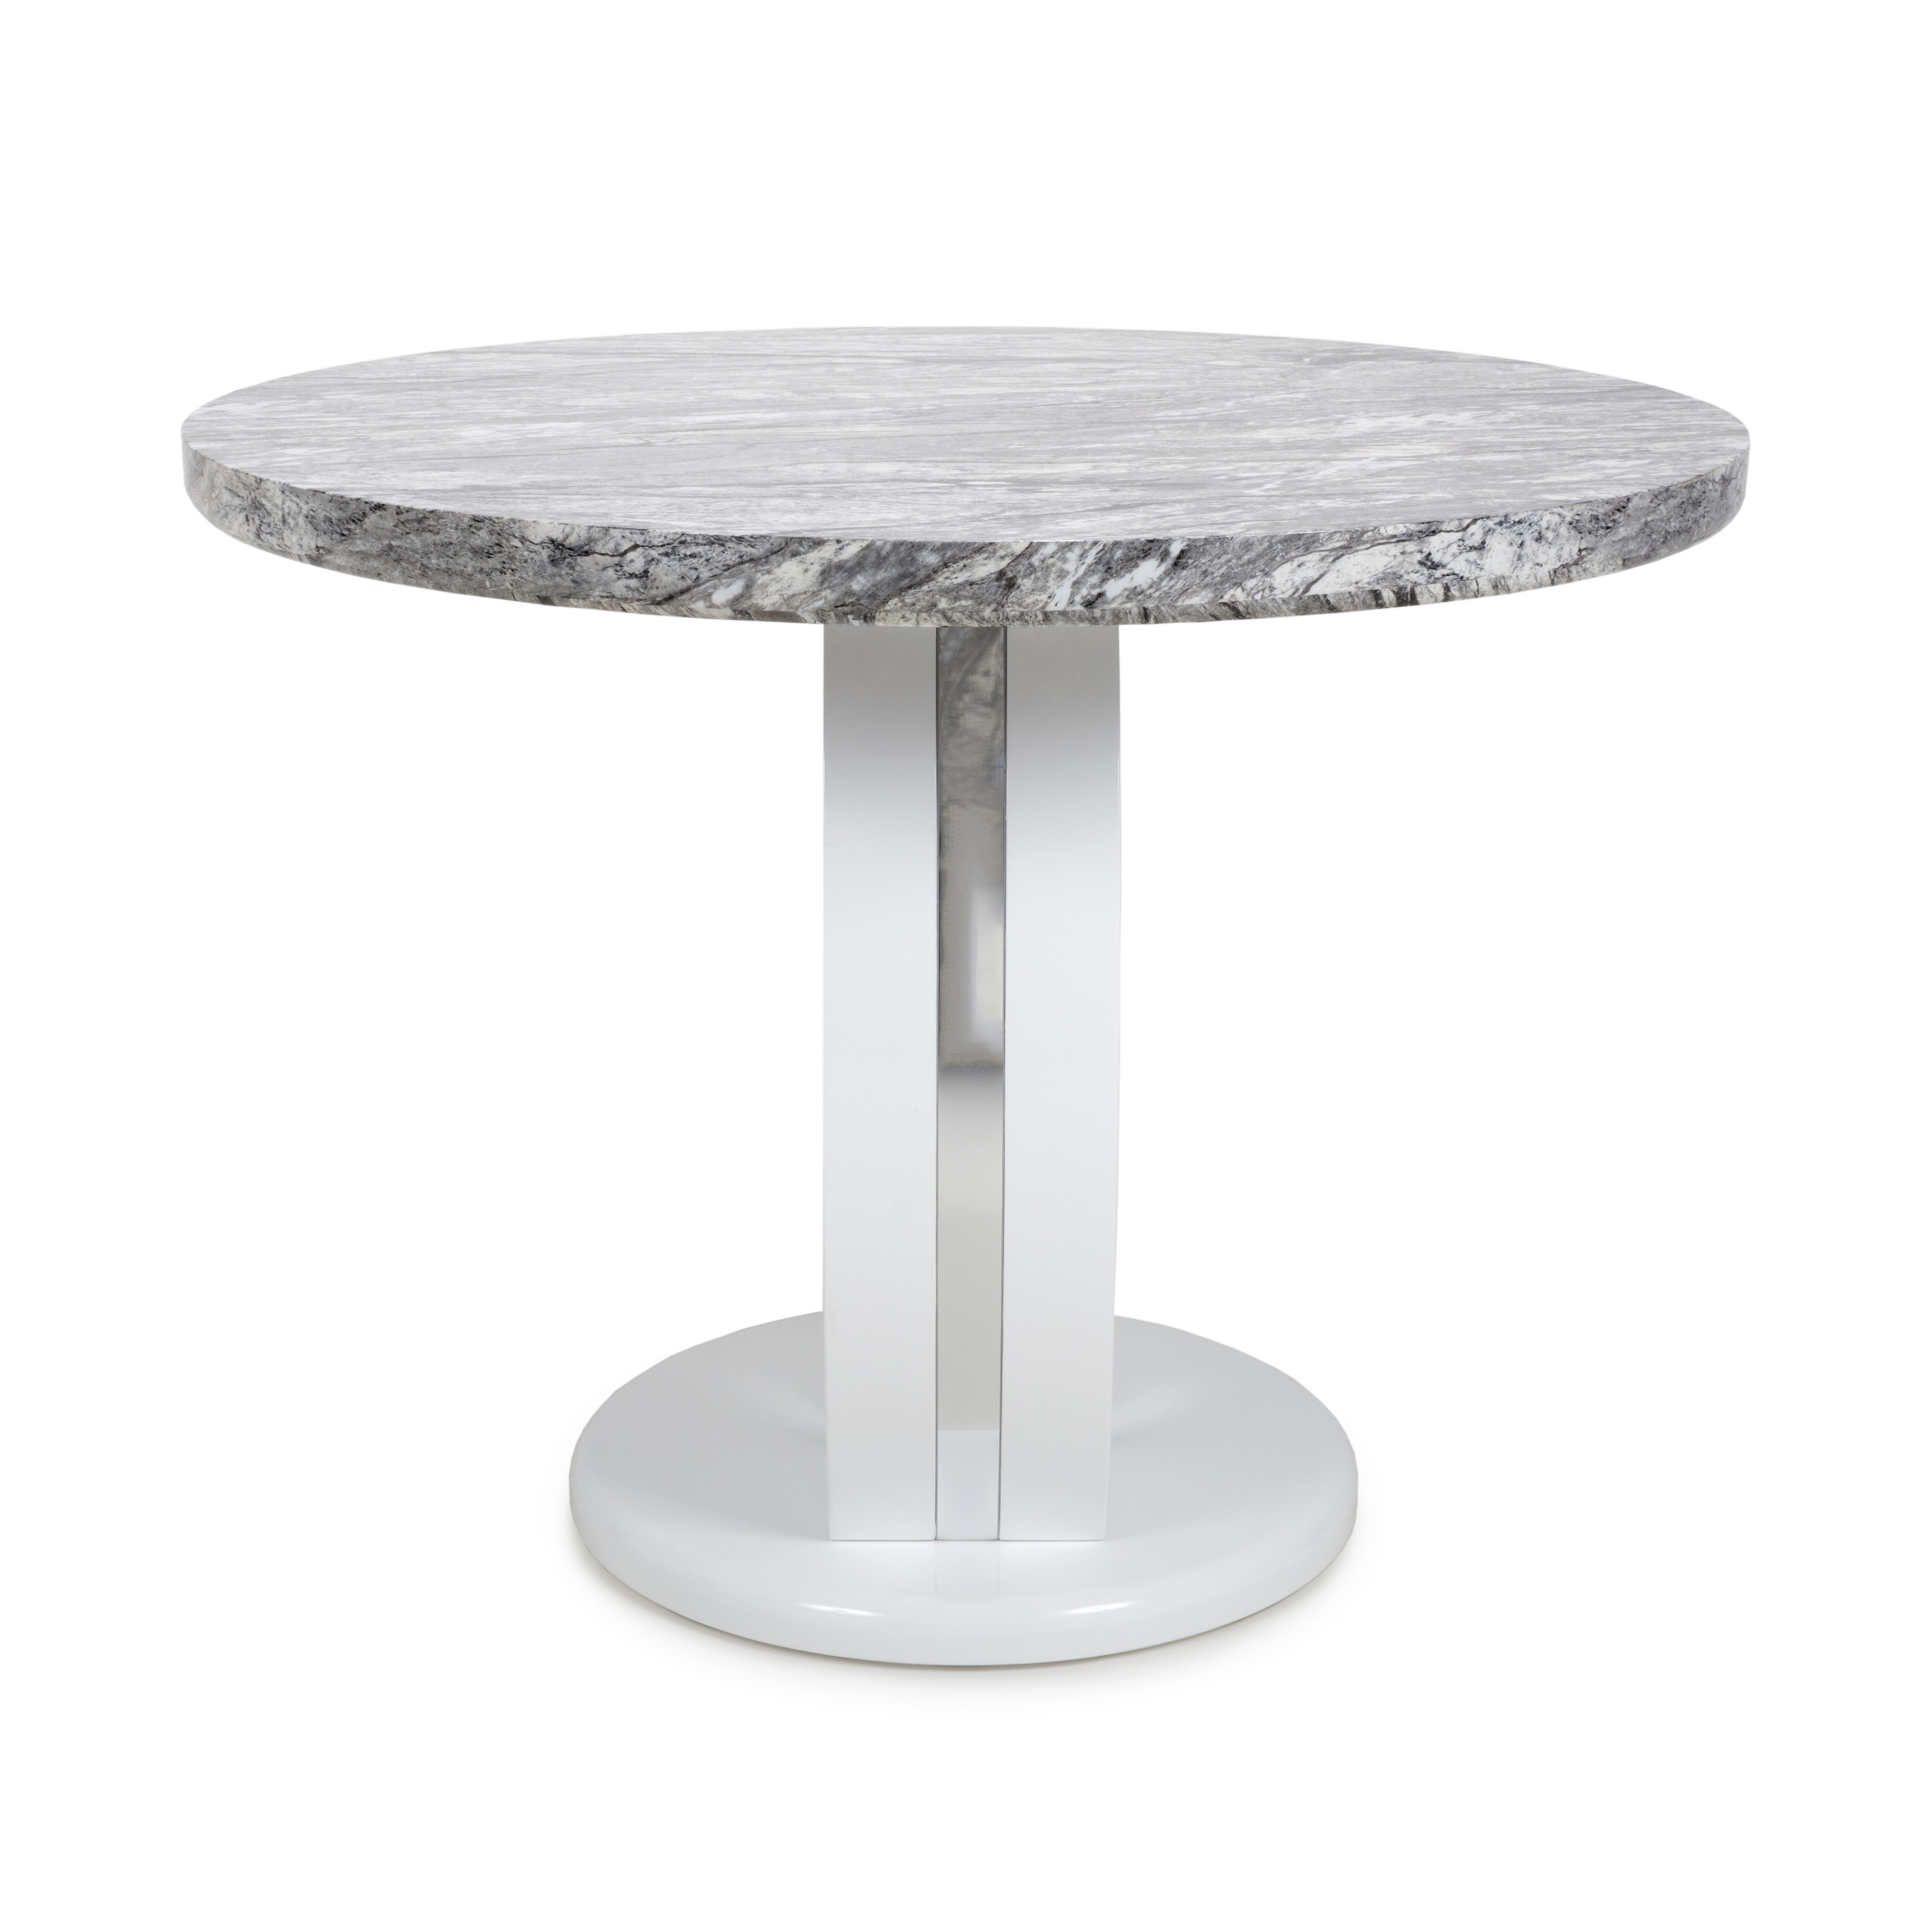 Athena Marble Effect And White High Gloss Modern Round Dining Table